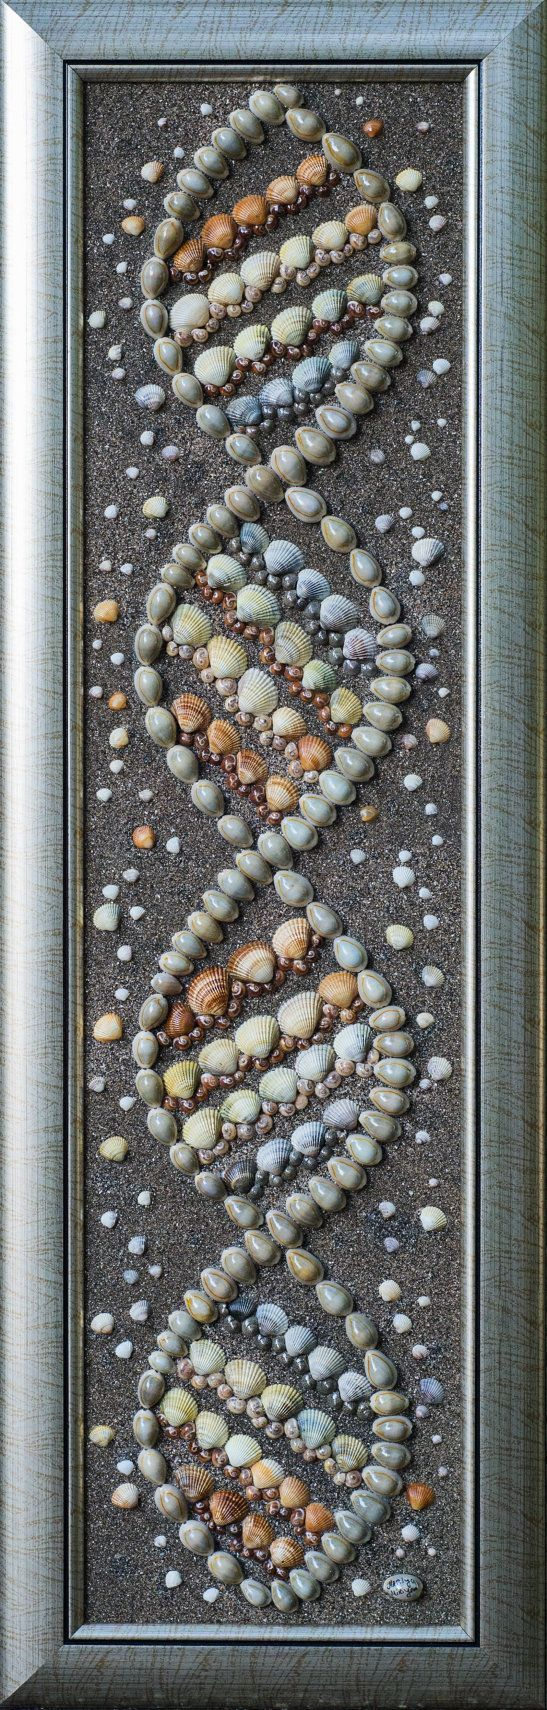 DIY your photo charms, 100% compatible with Pandora bracelets. Make your gifts special. Make your life special! Sea Shells Sea snail Mixed media Art Mosaic Wall by PebbleShellArt